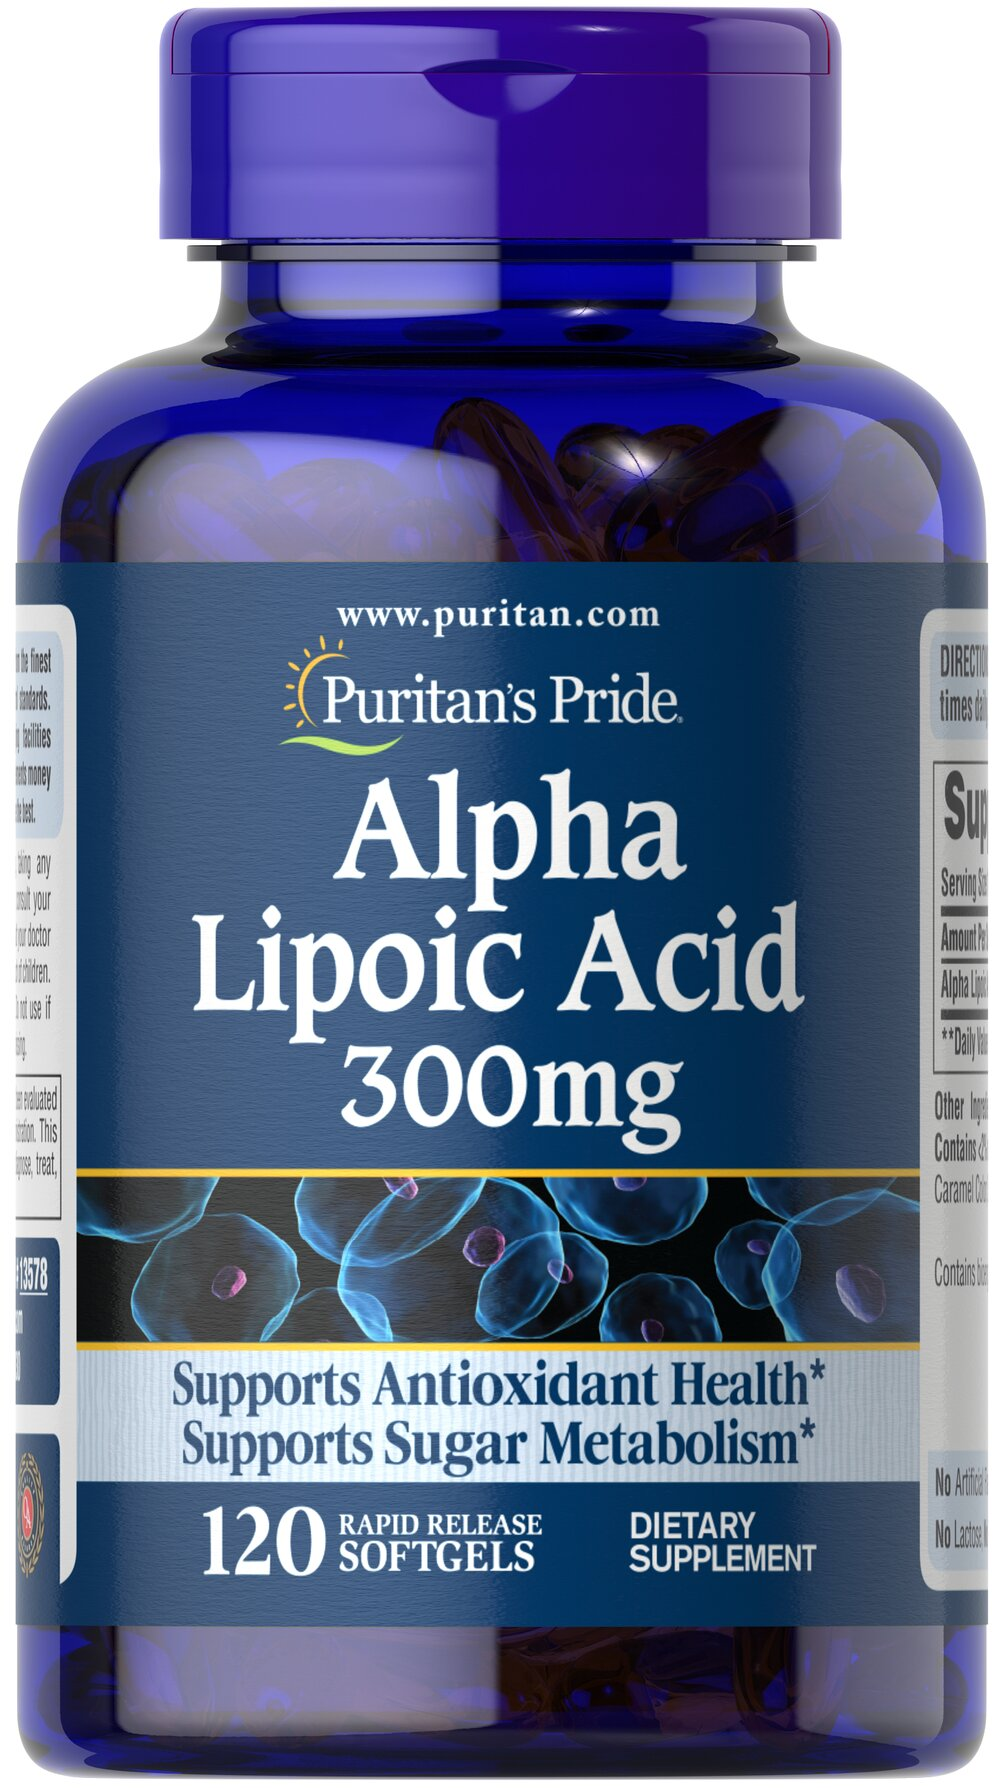 "Alpha Lipoic Acid 300 mg <p>Alpha Lipoic Acid (ALA) helps metabolize sugar, especially in muscles, where it promotes energy.**</p><p>ALA is also beneficial for liver health, and helps to revitalize the underlying structure of the skin so it can look healthier and more radiant.**</p><p> ALA is often called the ""universal antioxidant"" for its ability to help neutralize cell-damaging free radicals.** </p> 120 Softgels 300 mg $8.39"